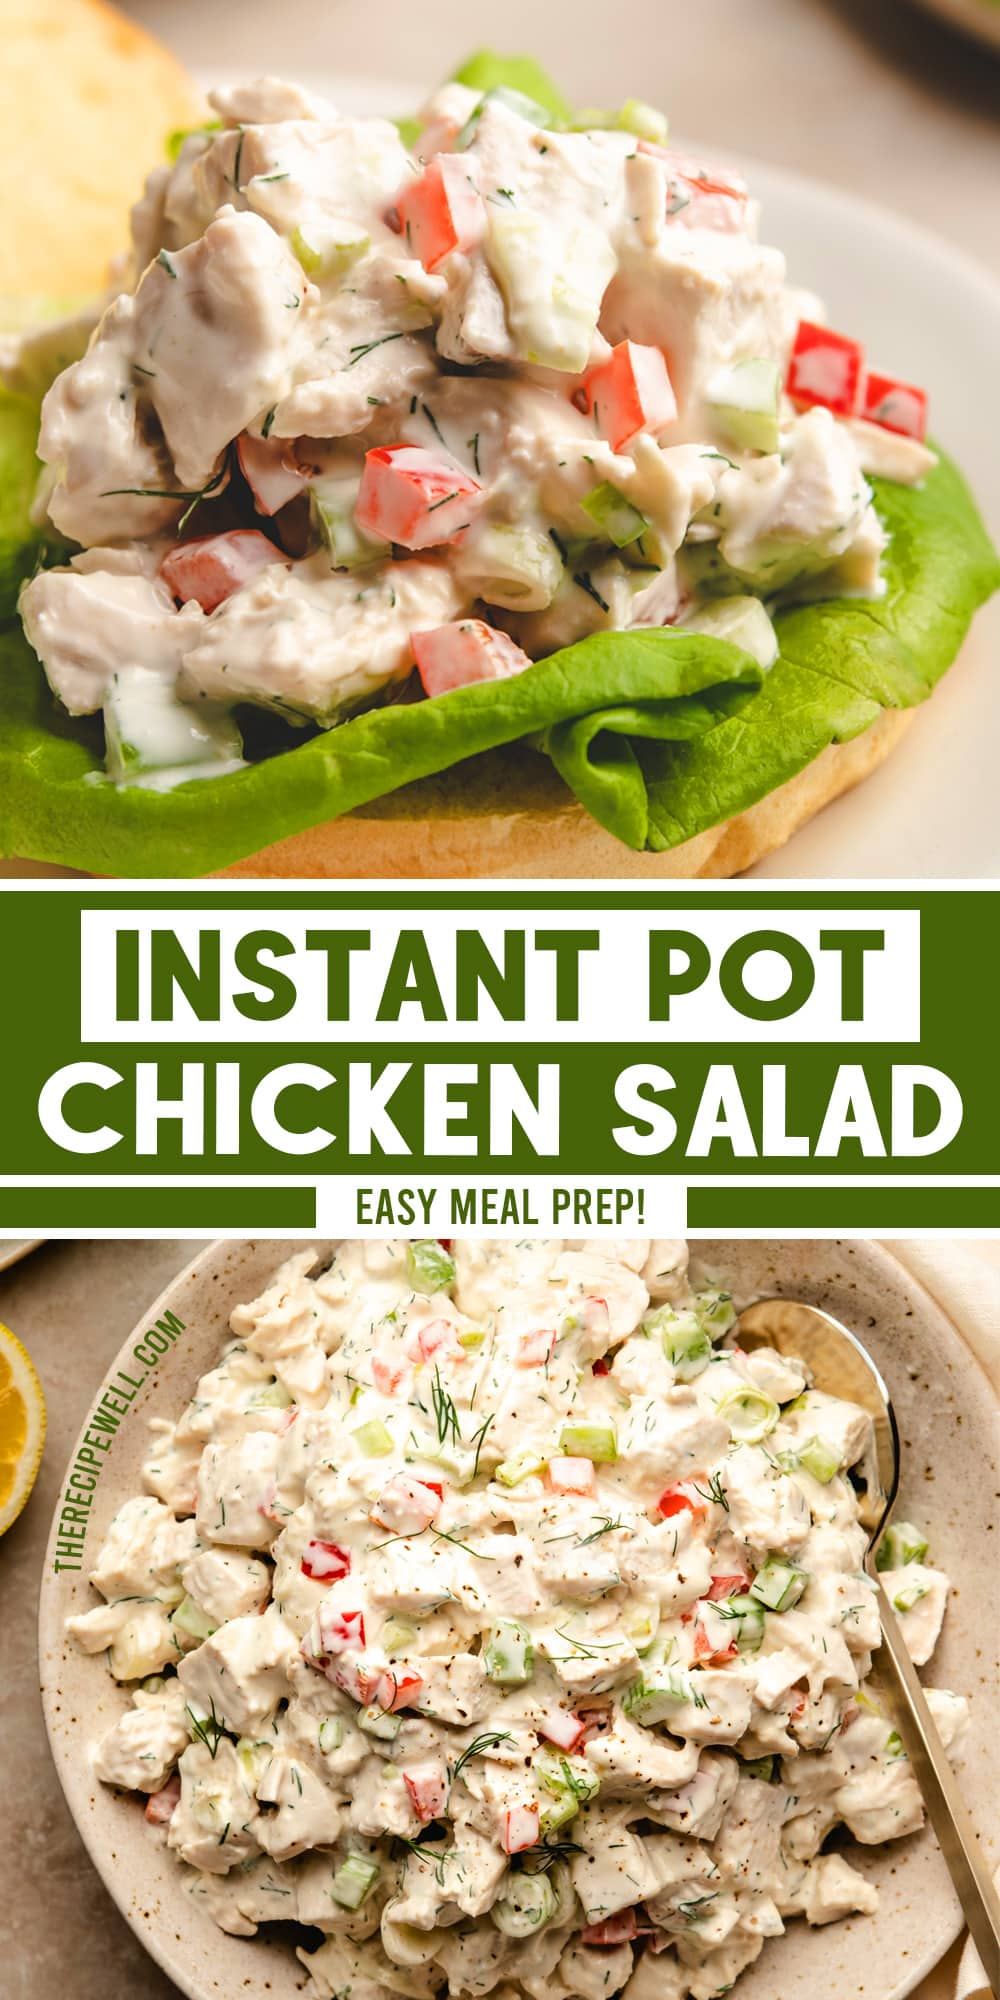 Instant Pot Chicken Salad is an easy, classic recipe made with simple ingredients like chicken breast, celery, bell pepper, green onion, mayo and Greek yogurt. It's ideal for meal prep and easily customized with different mix-ins. via @therecipewell